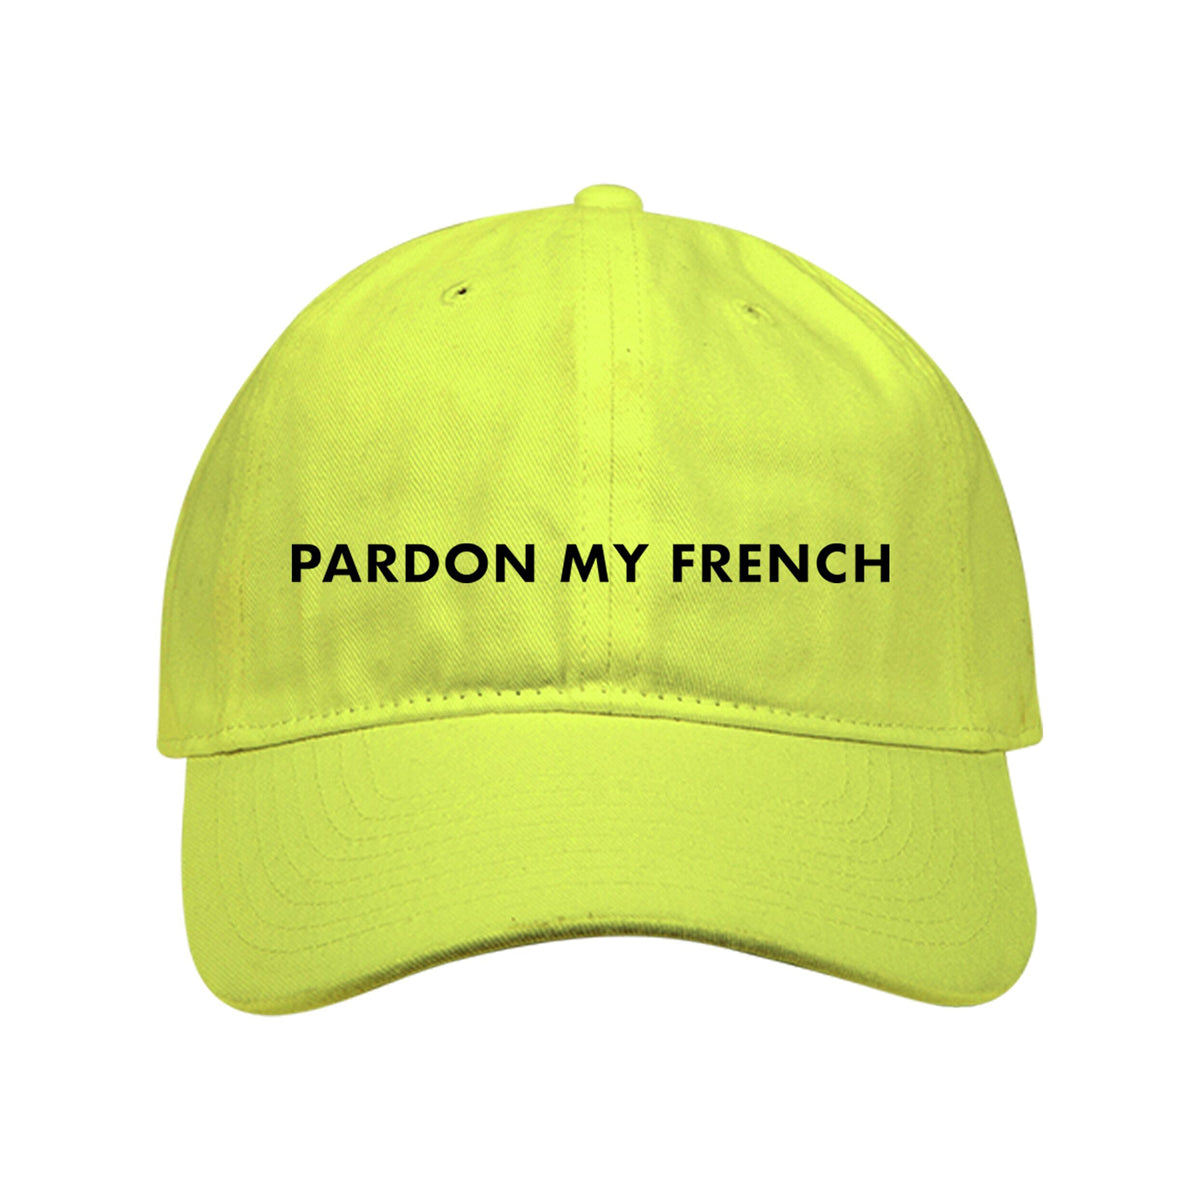 PARDON MY FRENCH NEON YELLOW CAP